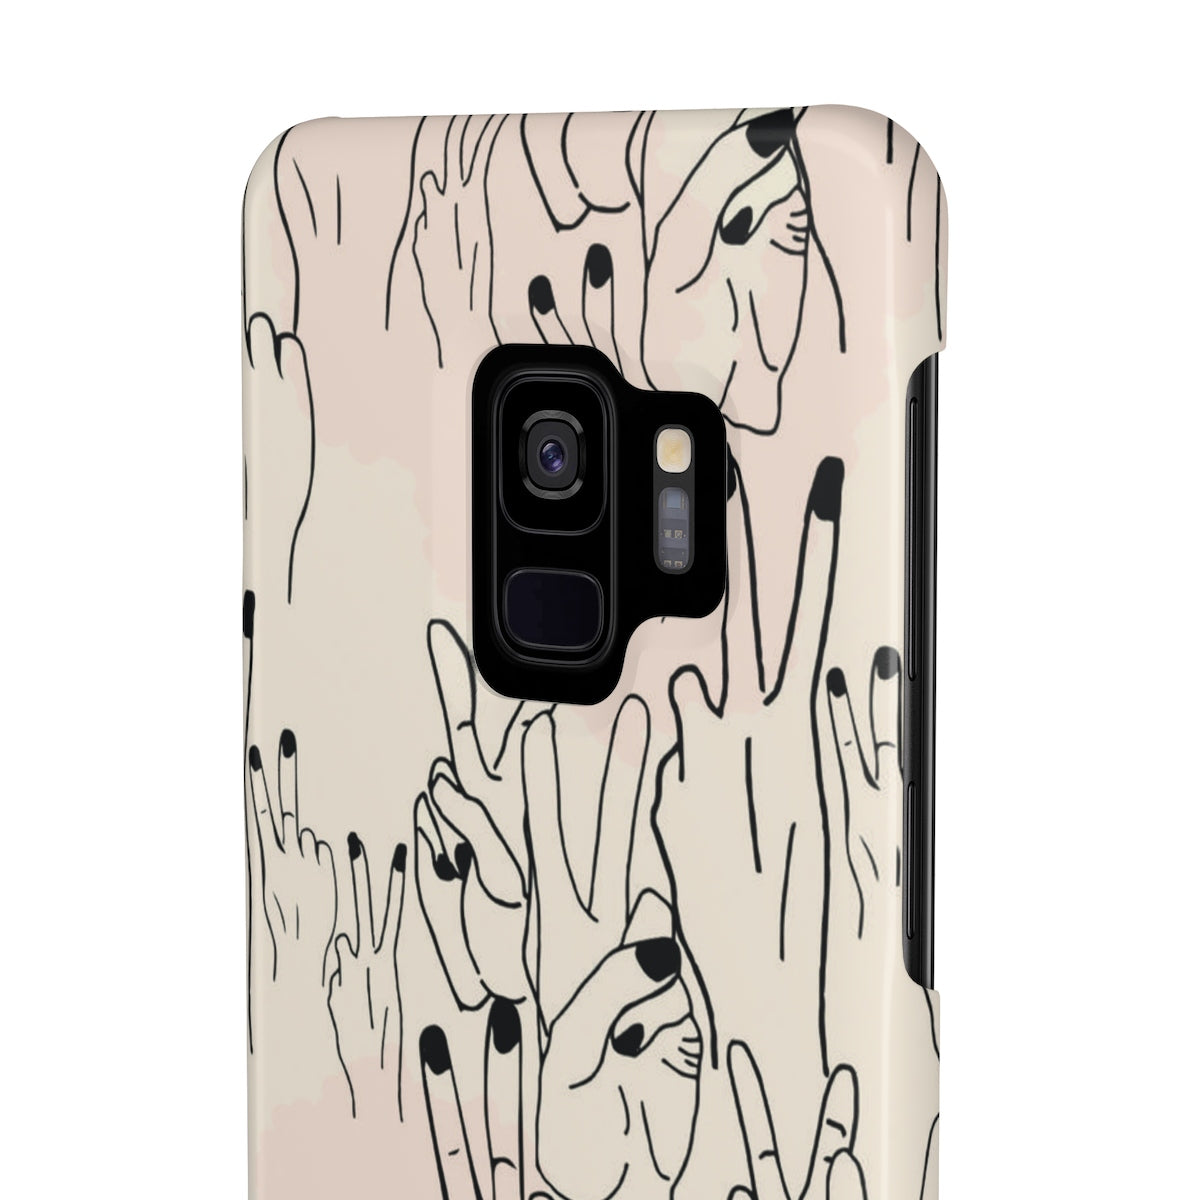 Deuces Sleek and Chic Phone Case